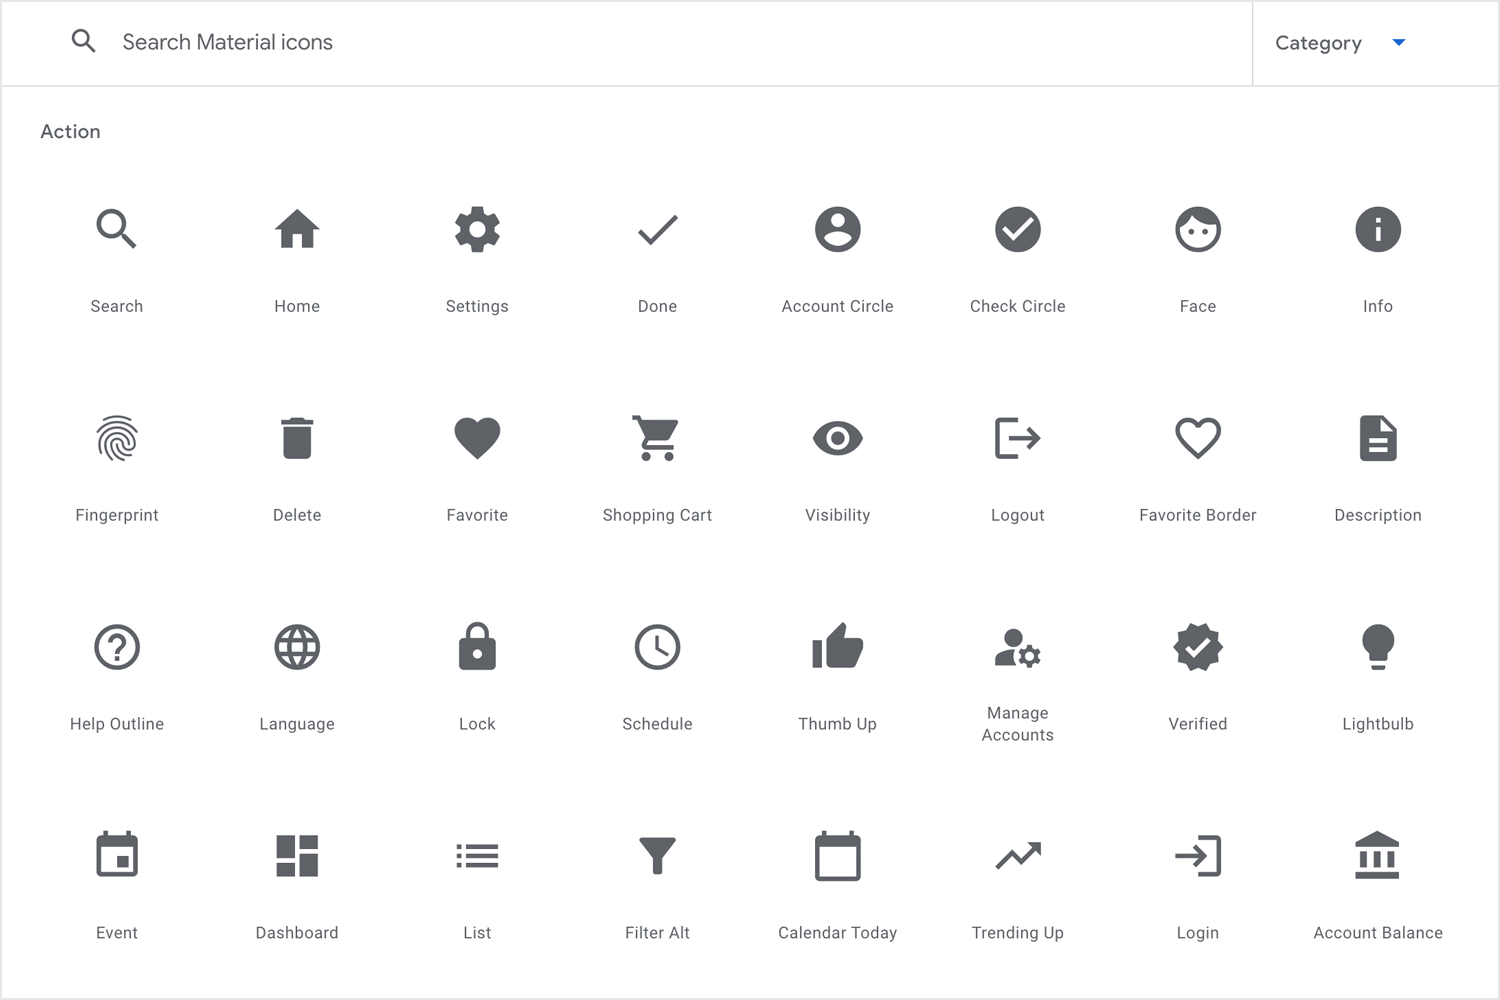 Free app icons to download - Material Design